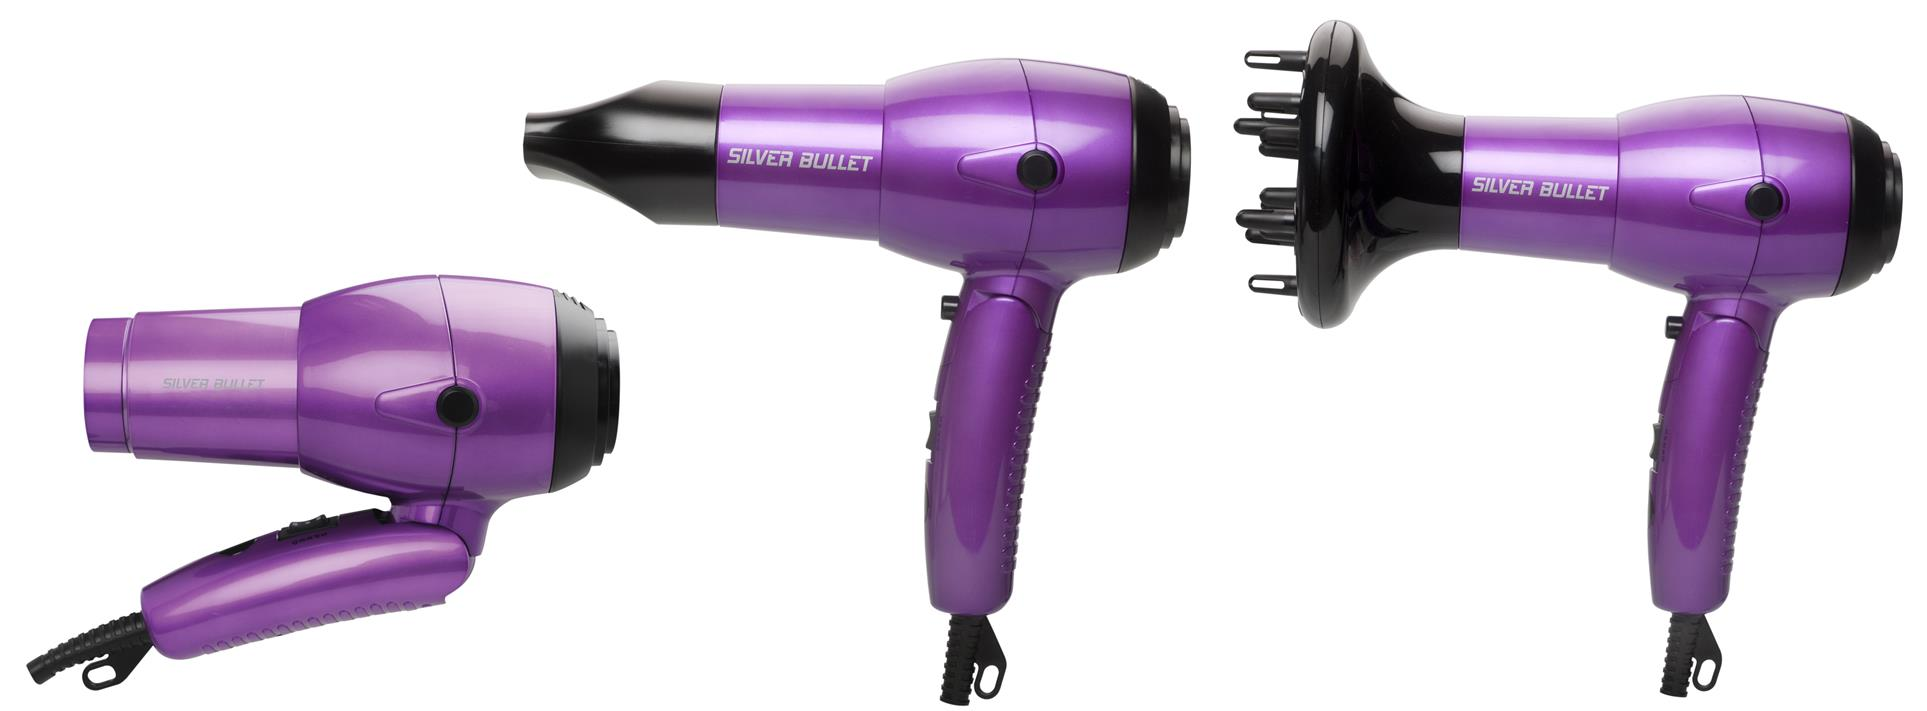 Silver Bullet Worldwide Ionic Travel Hair Dryer from i-glamour.com